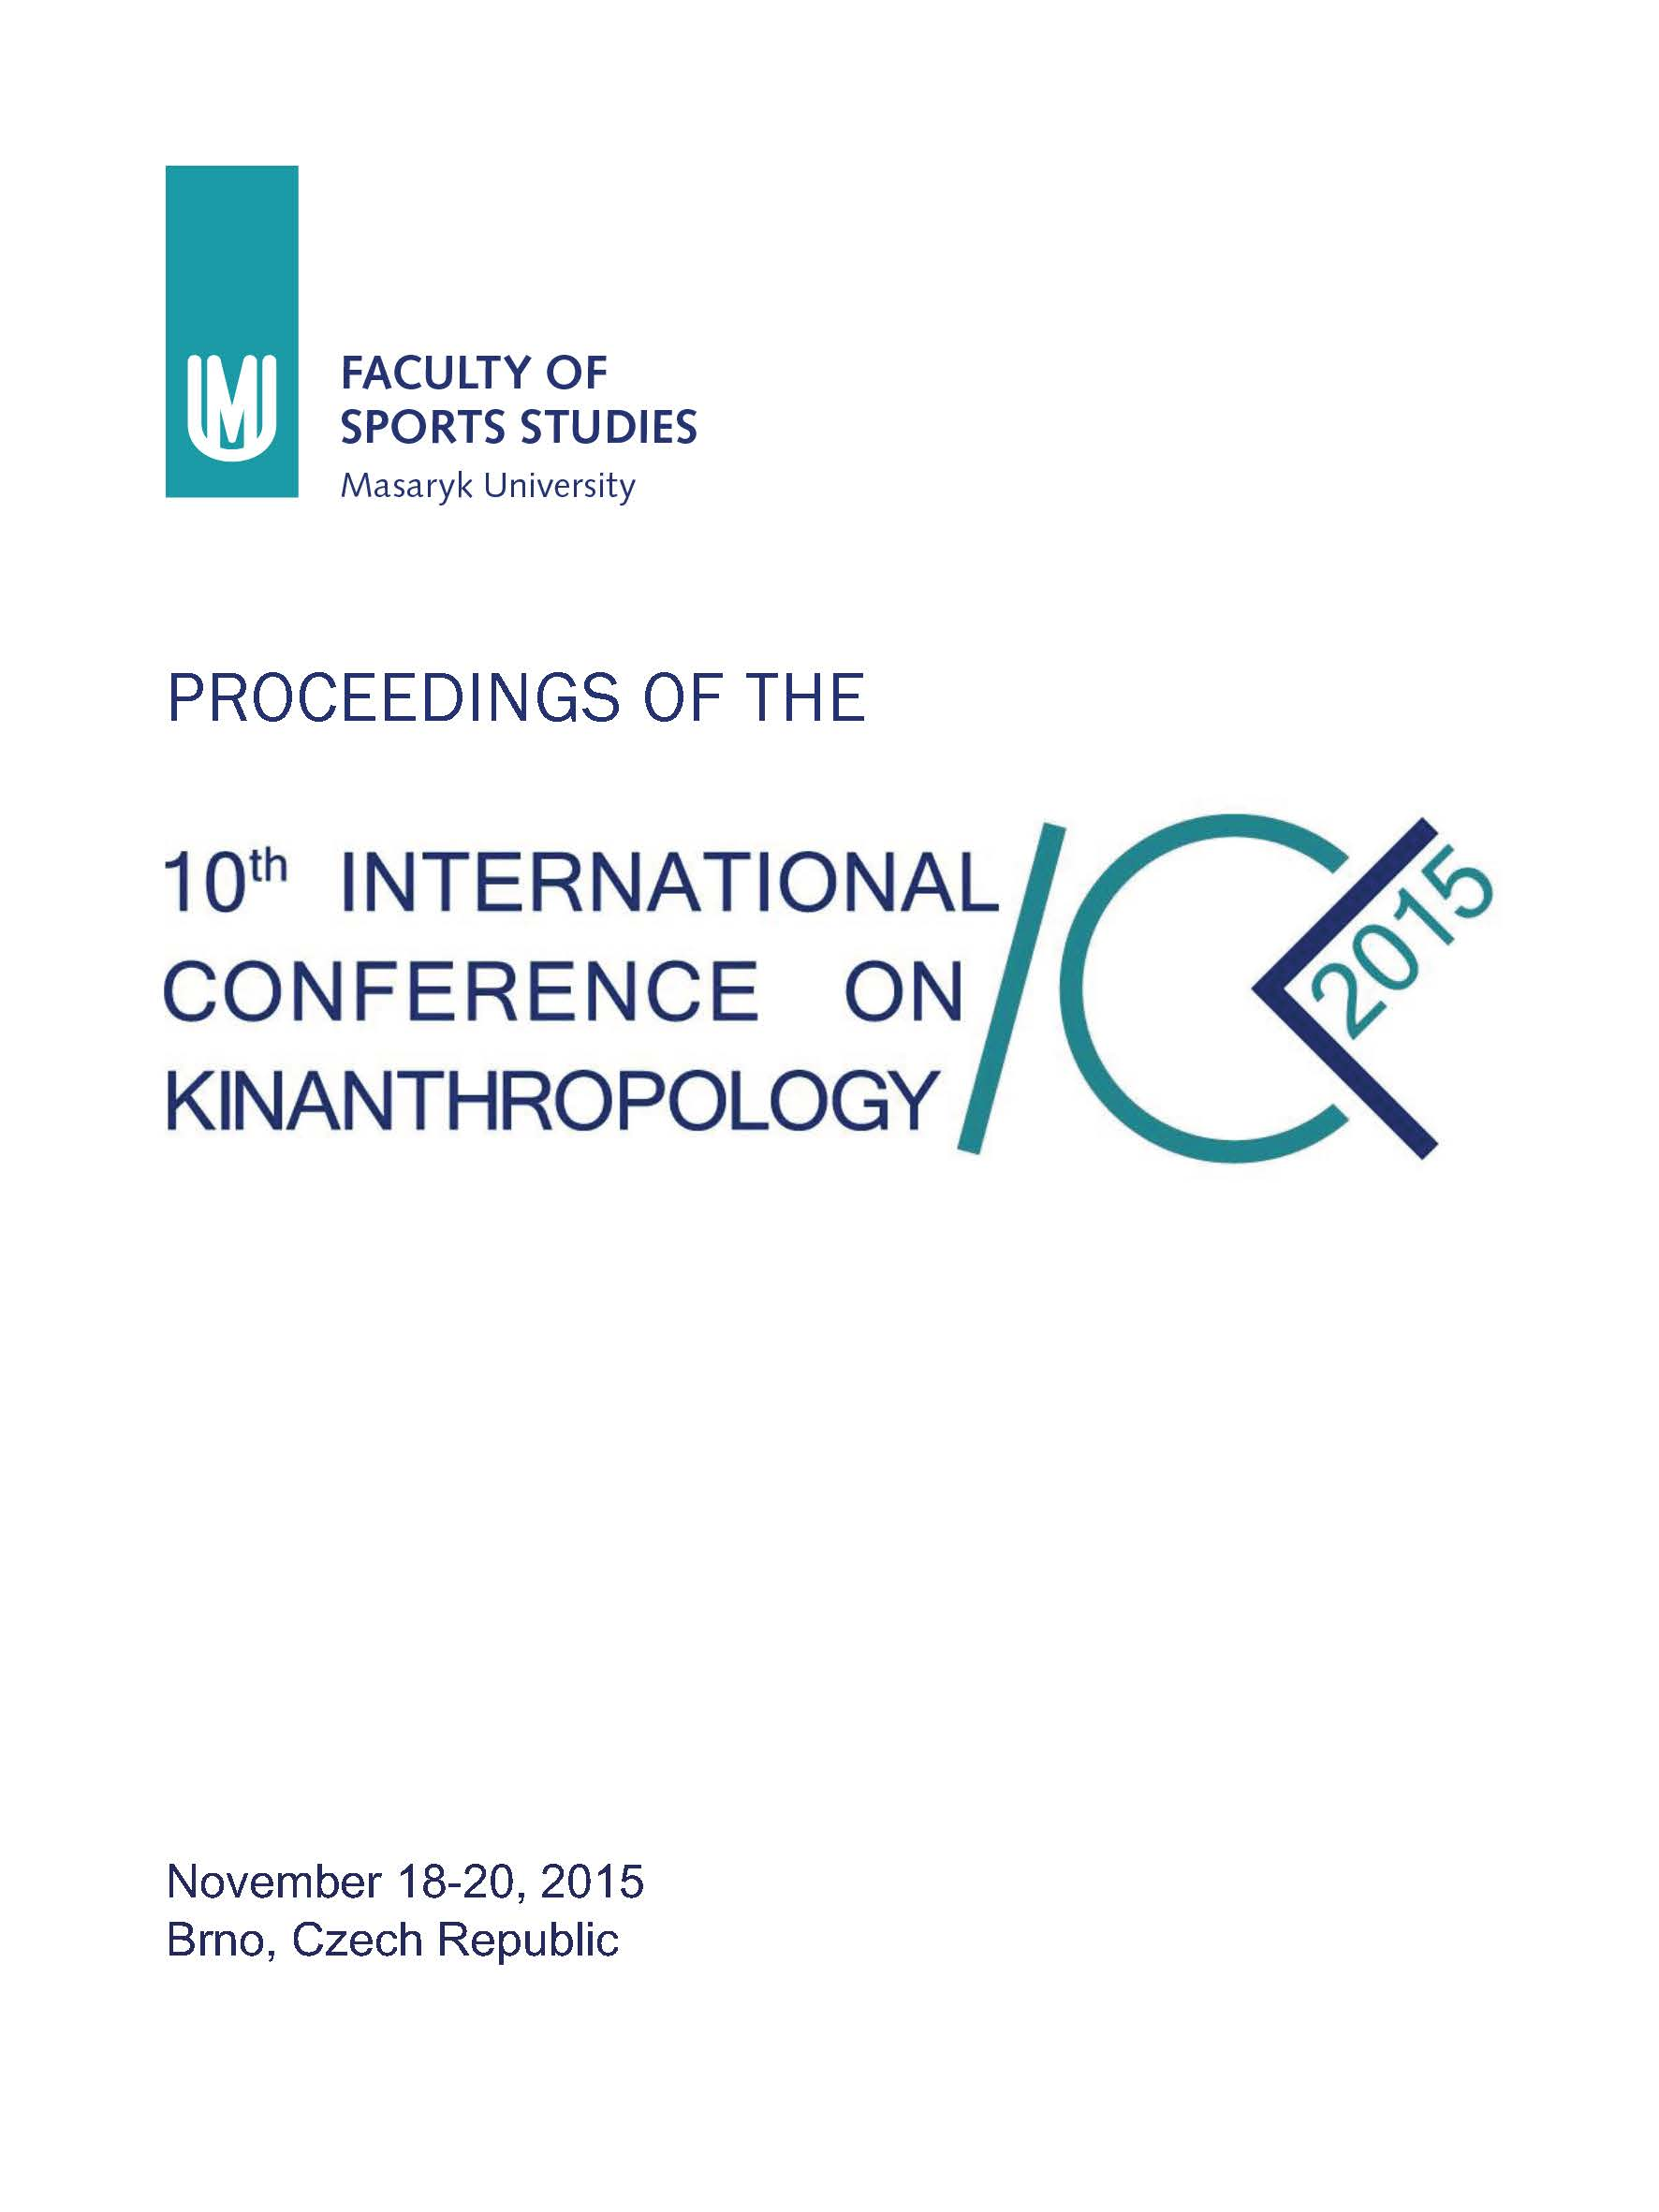 Obálka pro Proceedings of the 10th International Conference on Kinanthropology. November 18-20, 2015